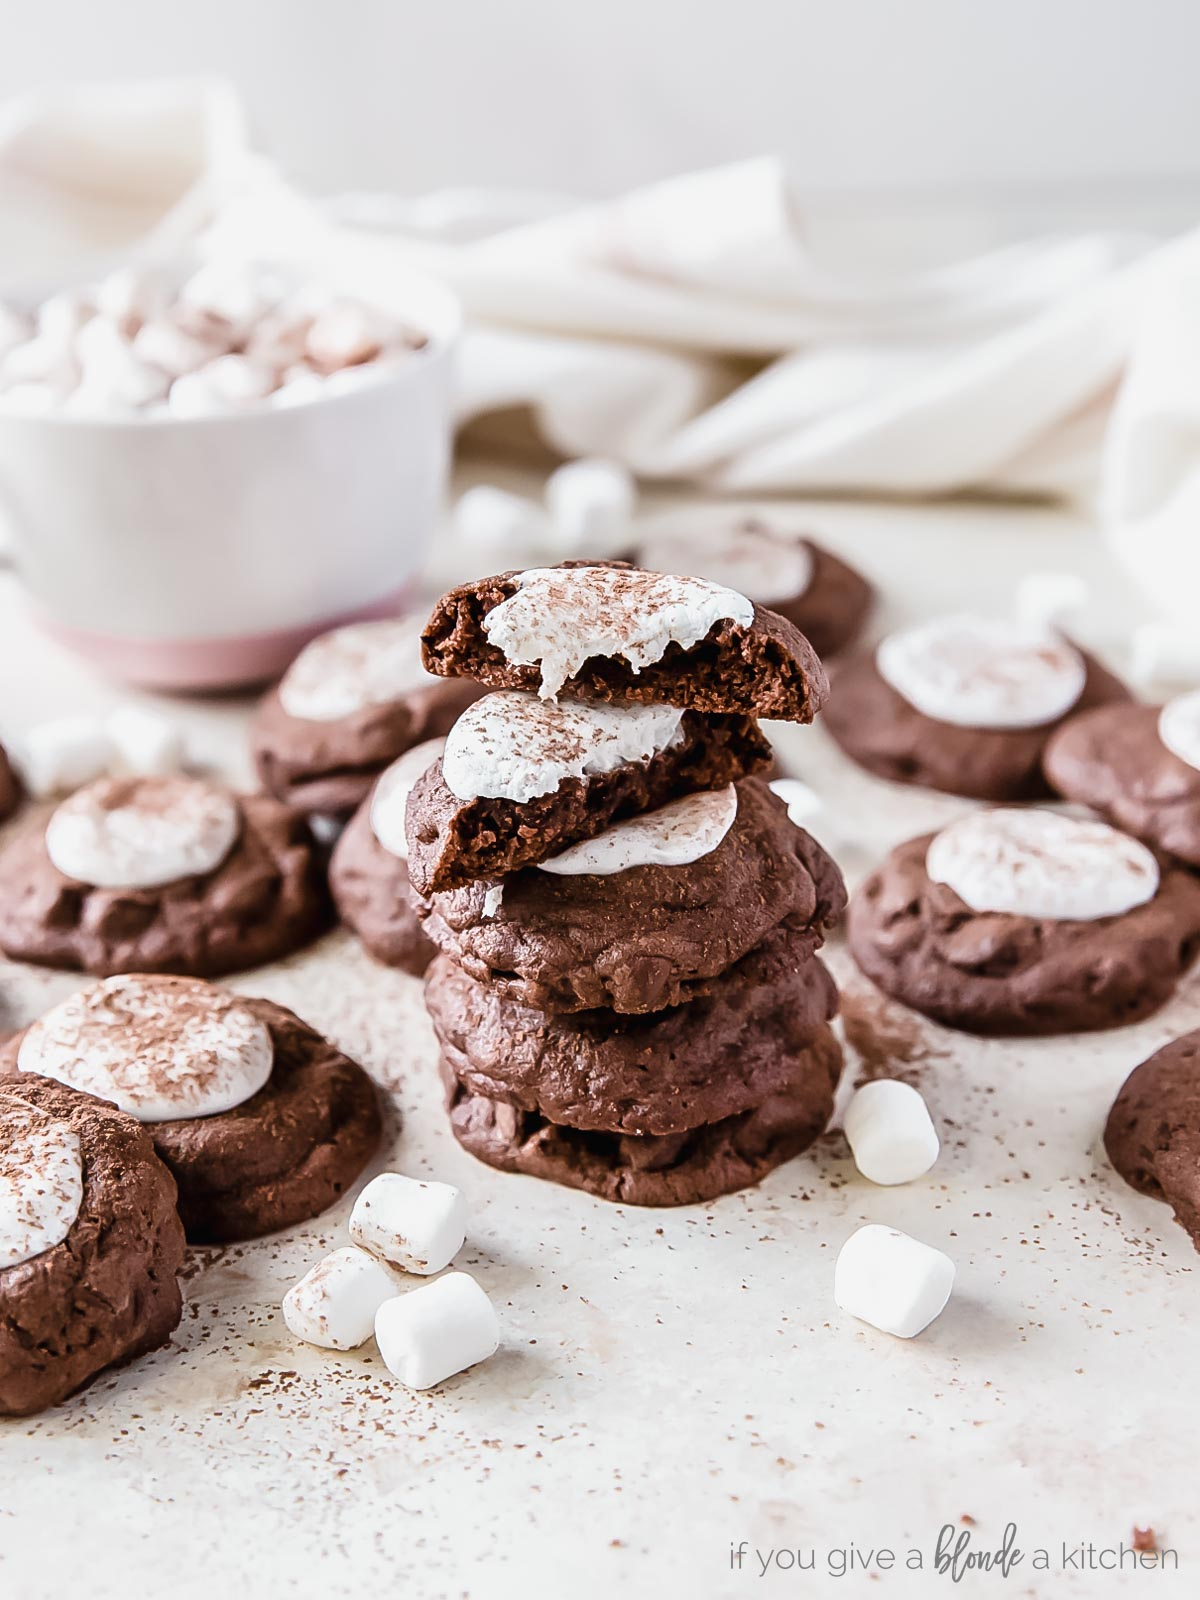 hand holding hot cocoa cookie with marshmallow and mug of hot chocolate